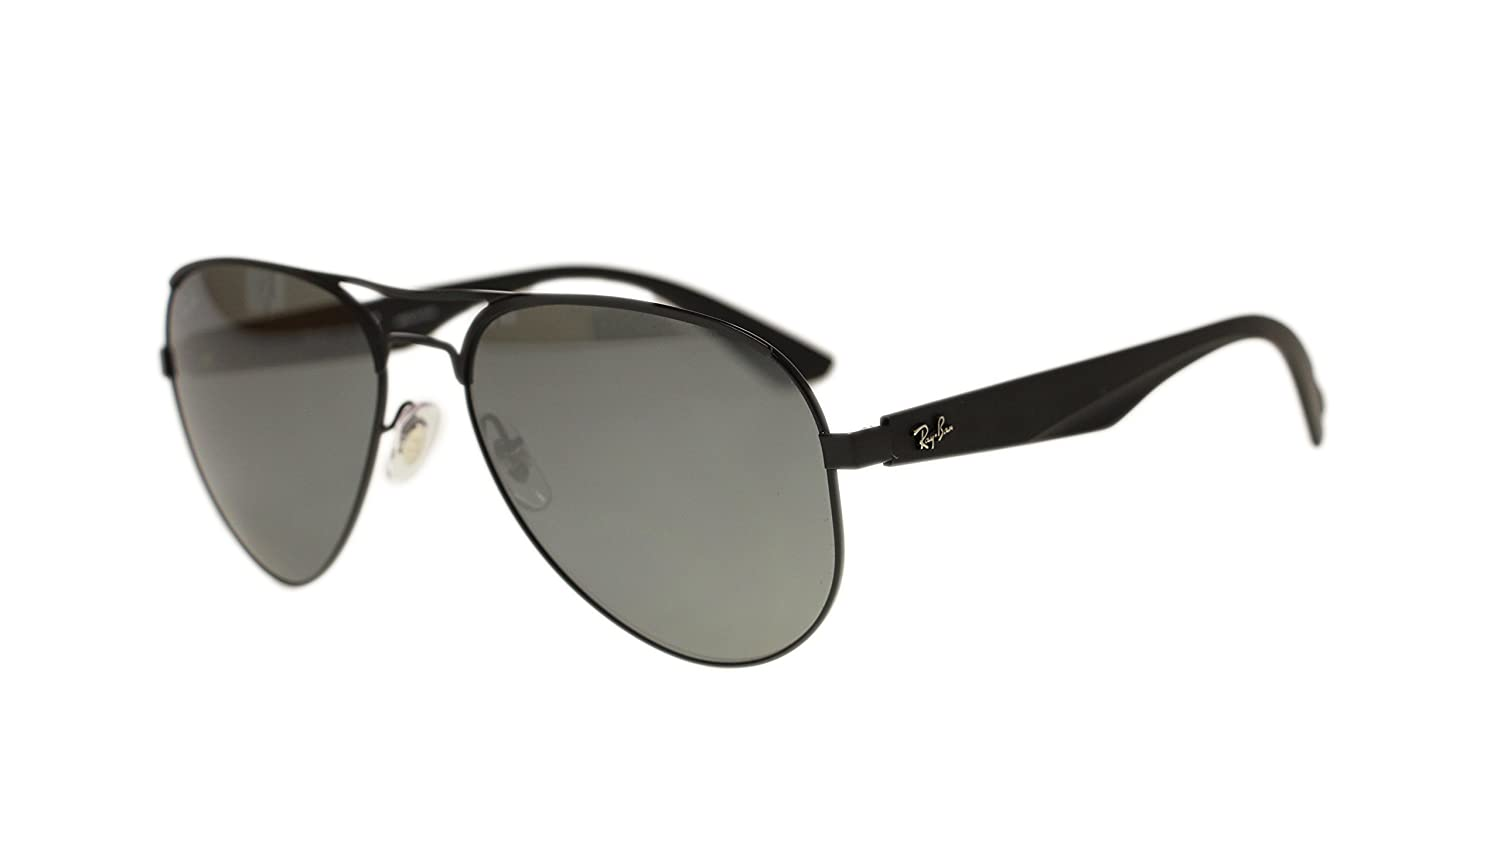 c2d2f13e088 Amazon.com  Ray Ban Mens Sunglasses RB3523 006 6G Matte Black Grey Silver  Mirror Lens 59mm Authentic  Clothing